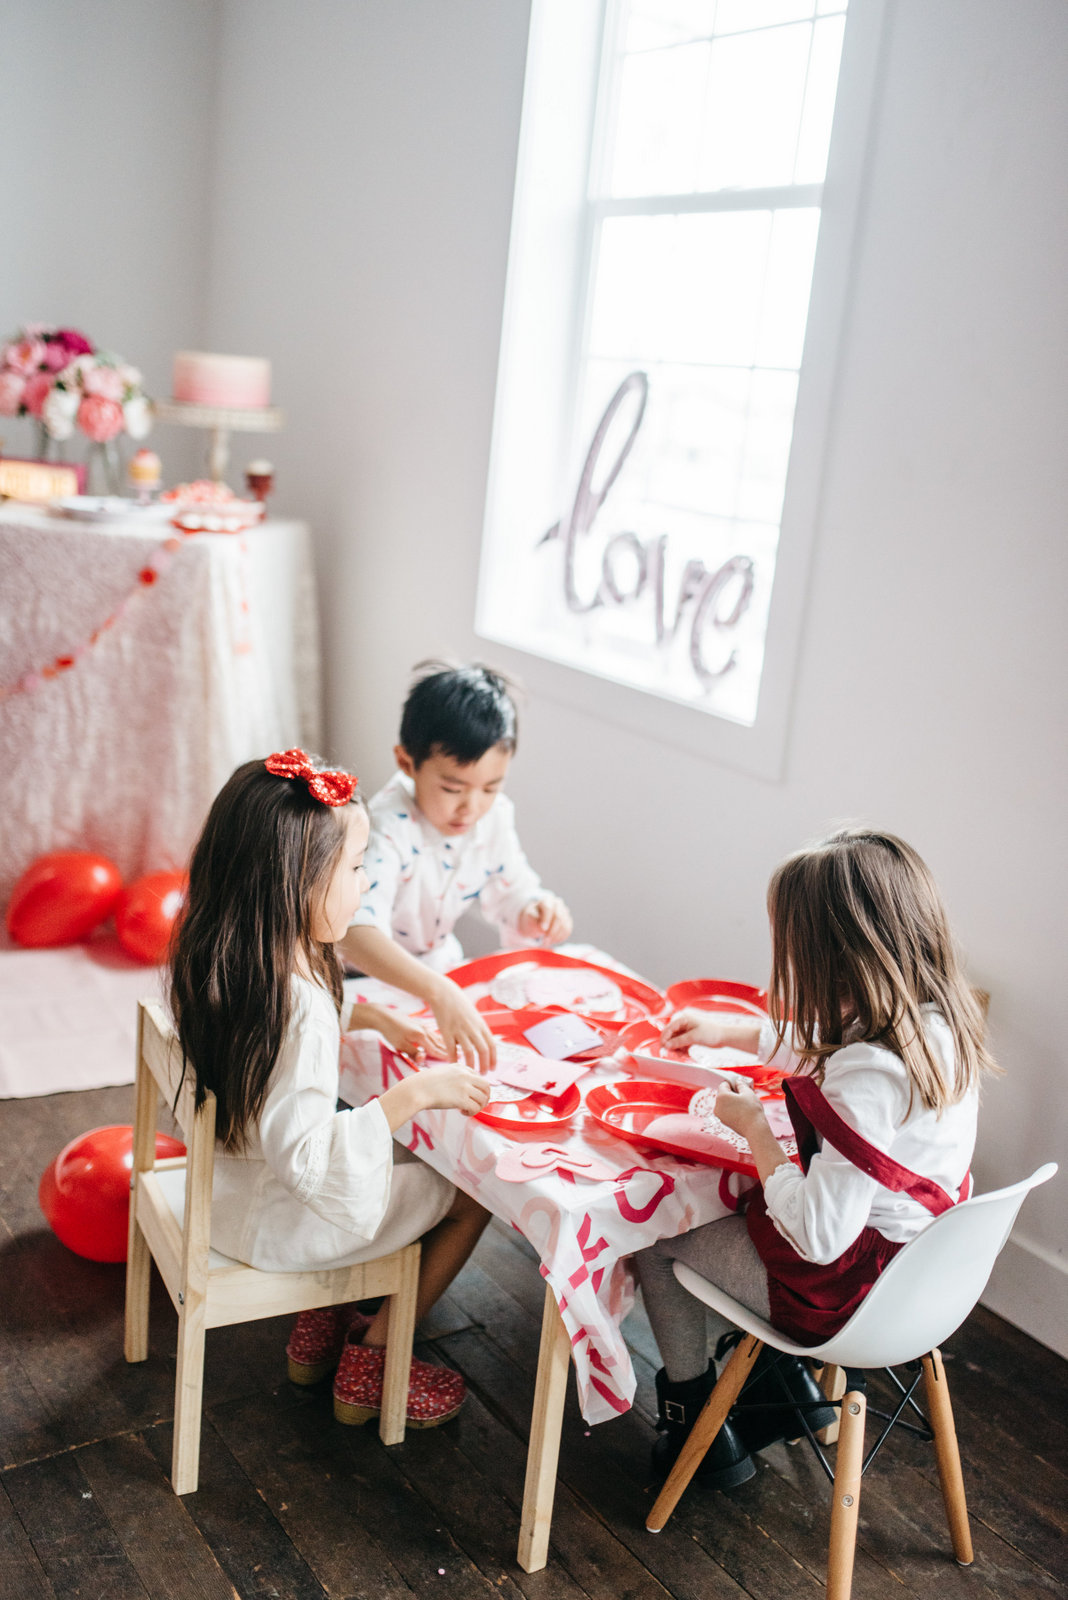 Family Valentine's Day Ideas: Valentine's Crafts for Kids